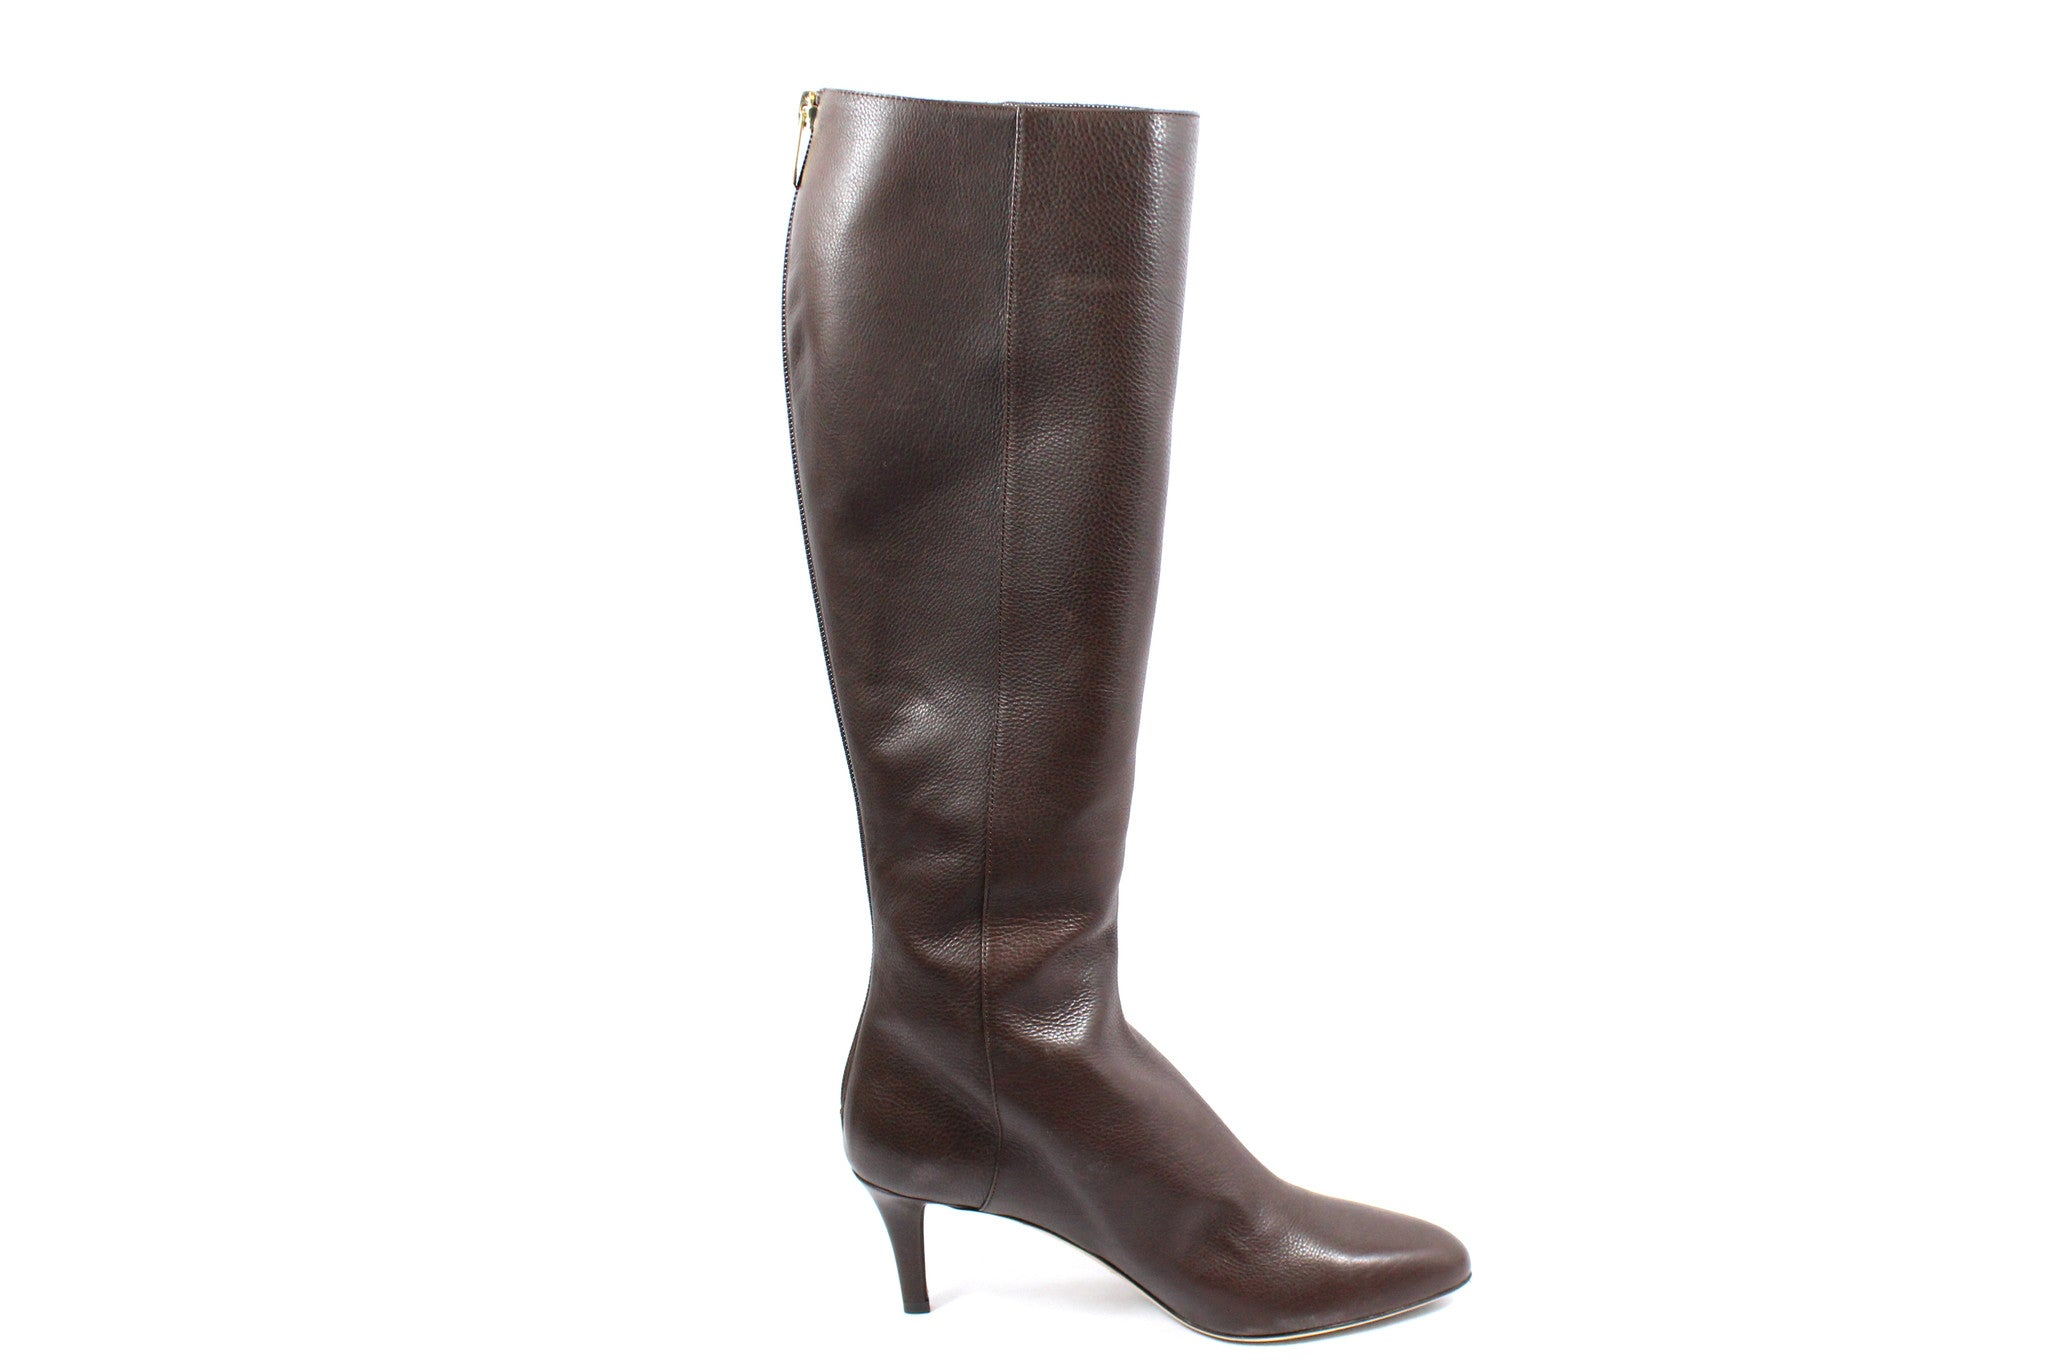 64b2da9cc56 Jimmy Choo Brown Leather Boots (Size 37) - Encore Consignment - 4